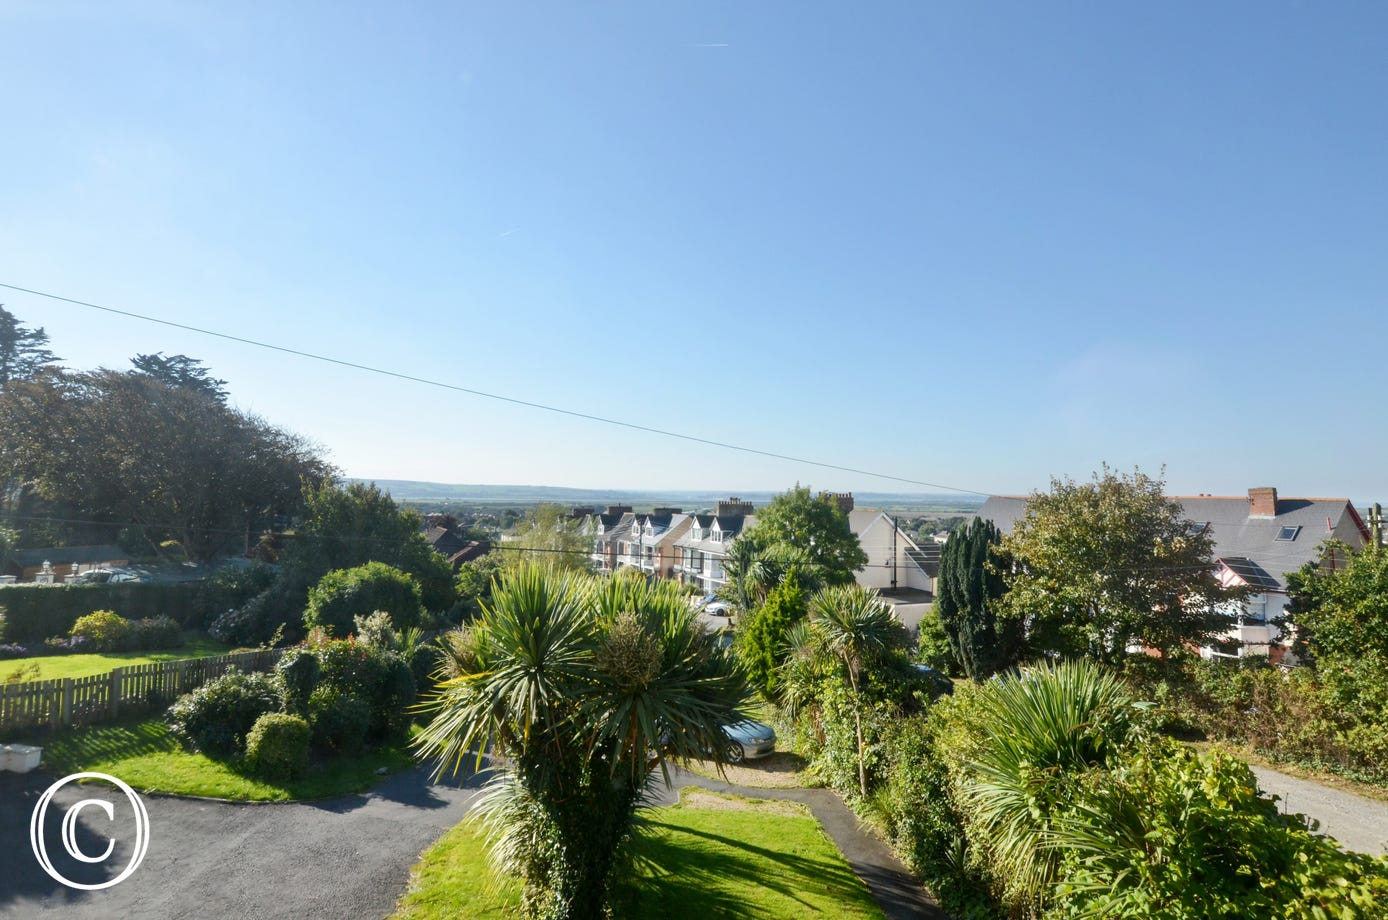 Wonderful views over the village and towards the Taw Estuary and the sea beyond